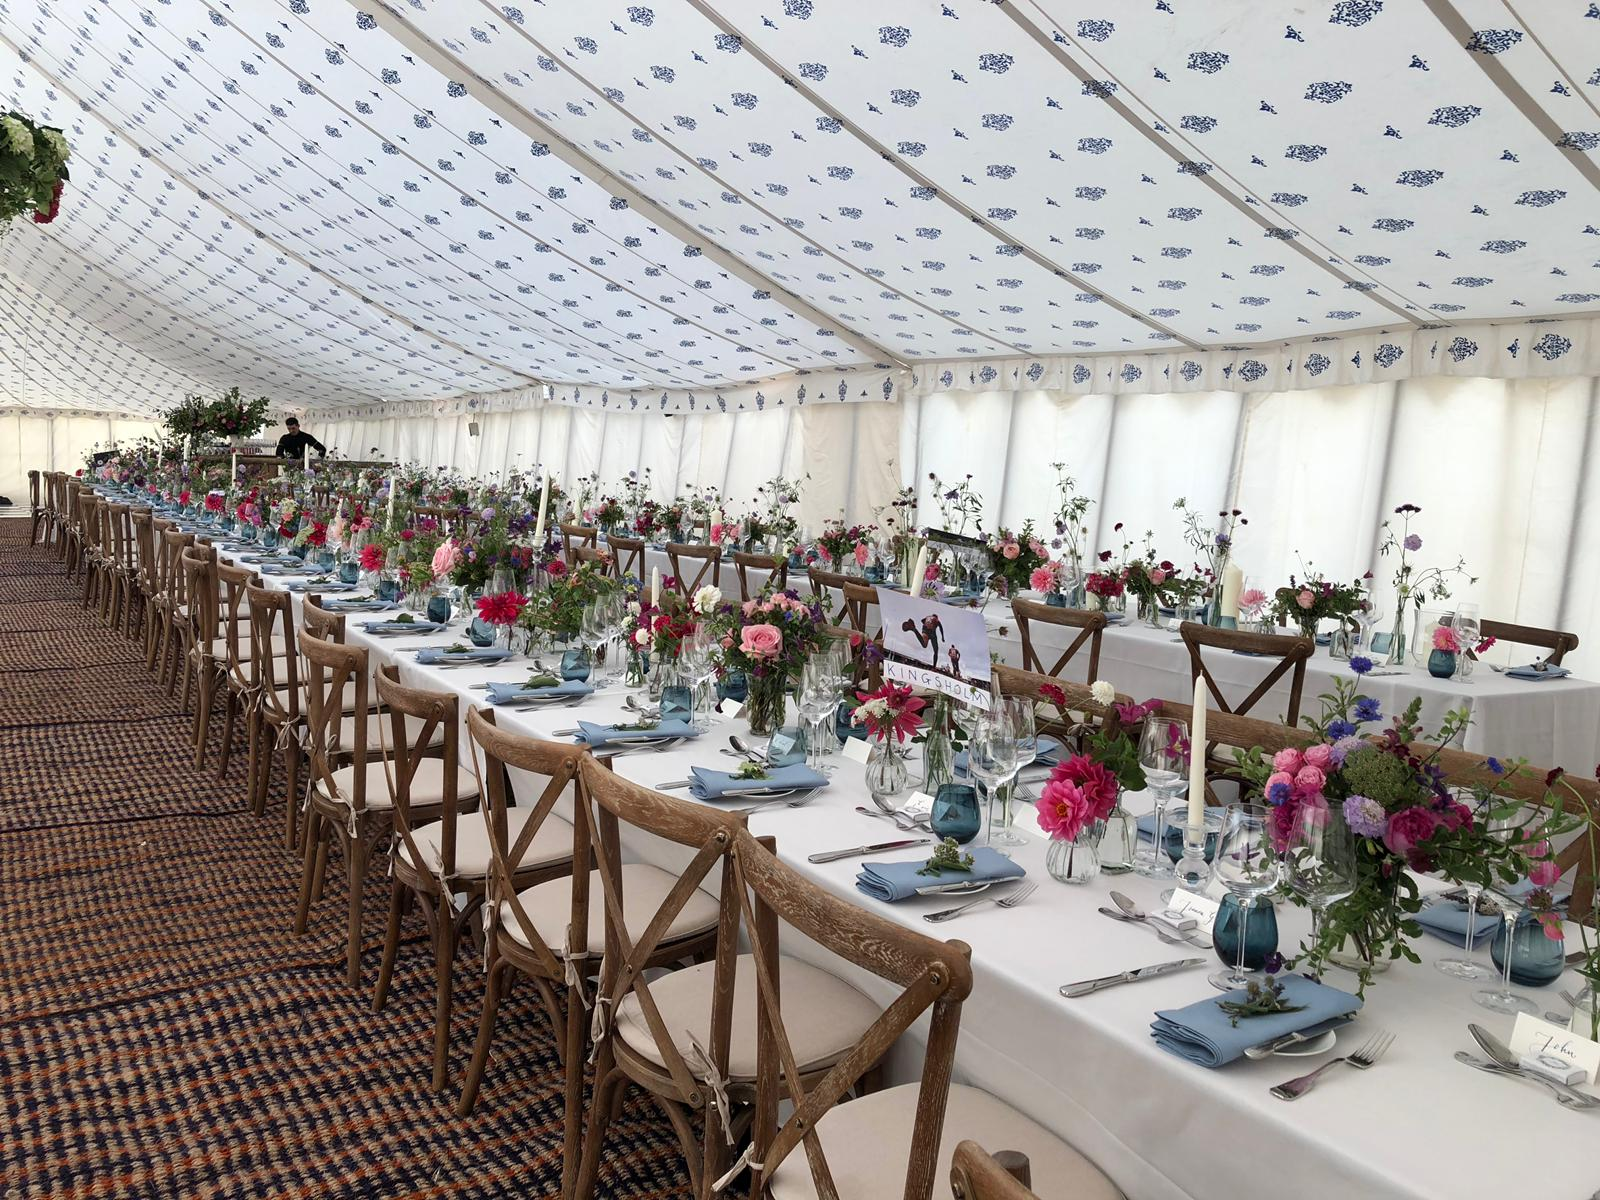 Rustic Oak Crossback Chairs at Marquee Wedding - Blue Goose Hire